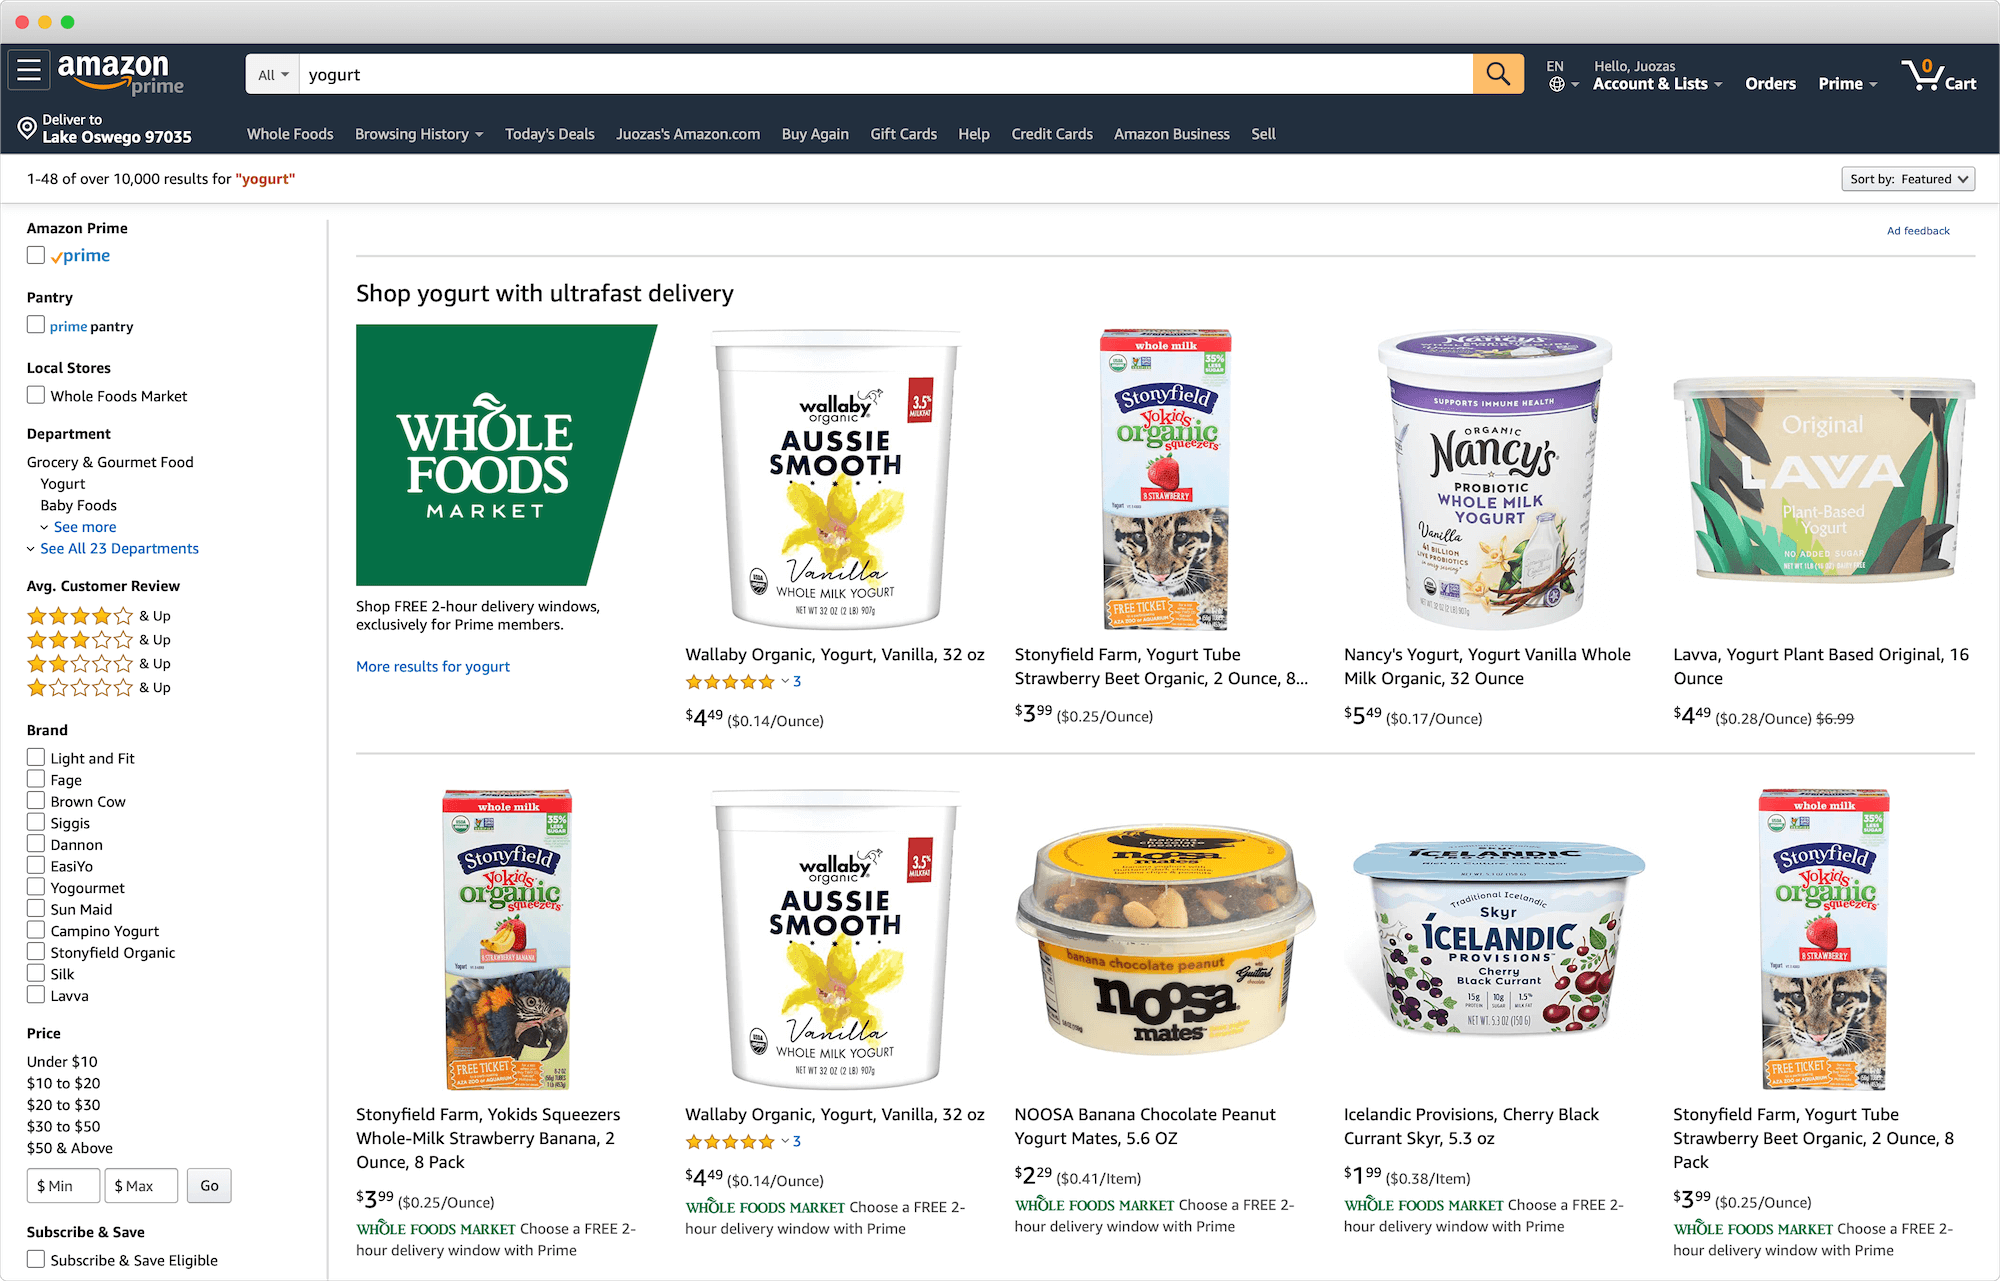 Amazon Whole Foods Search Results